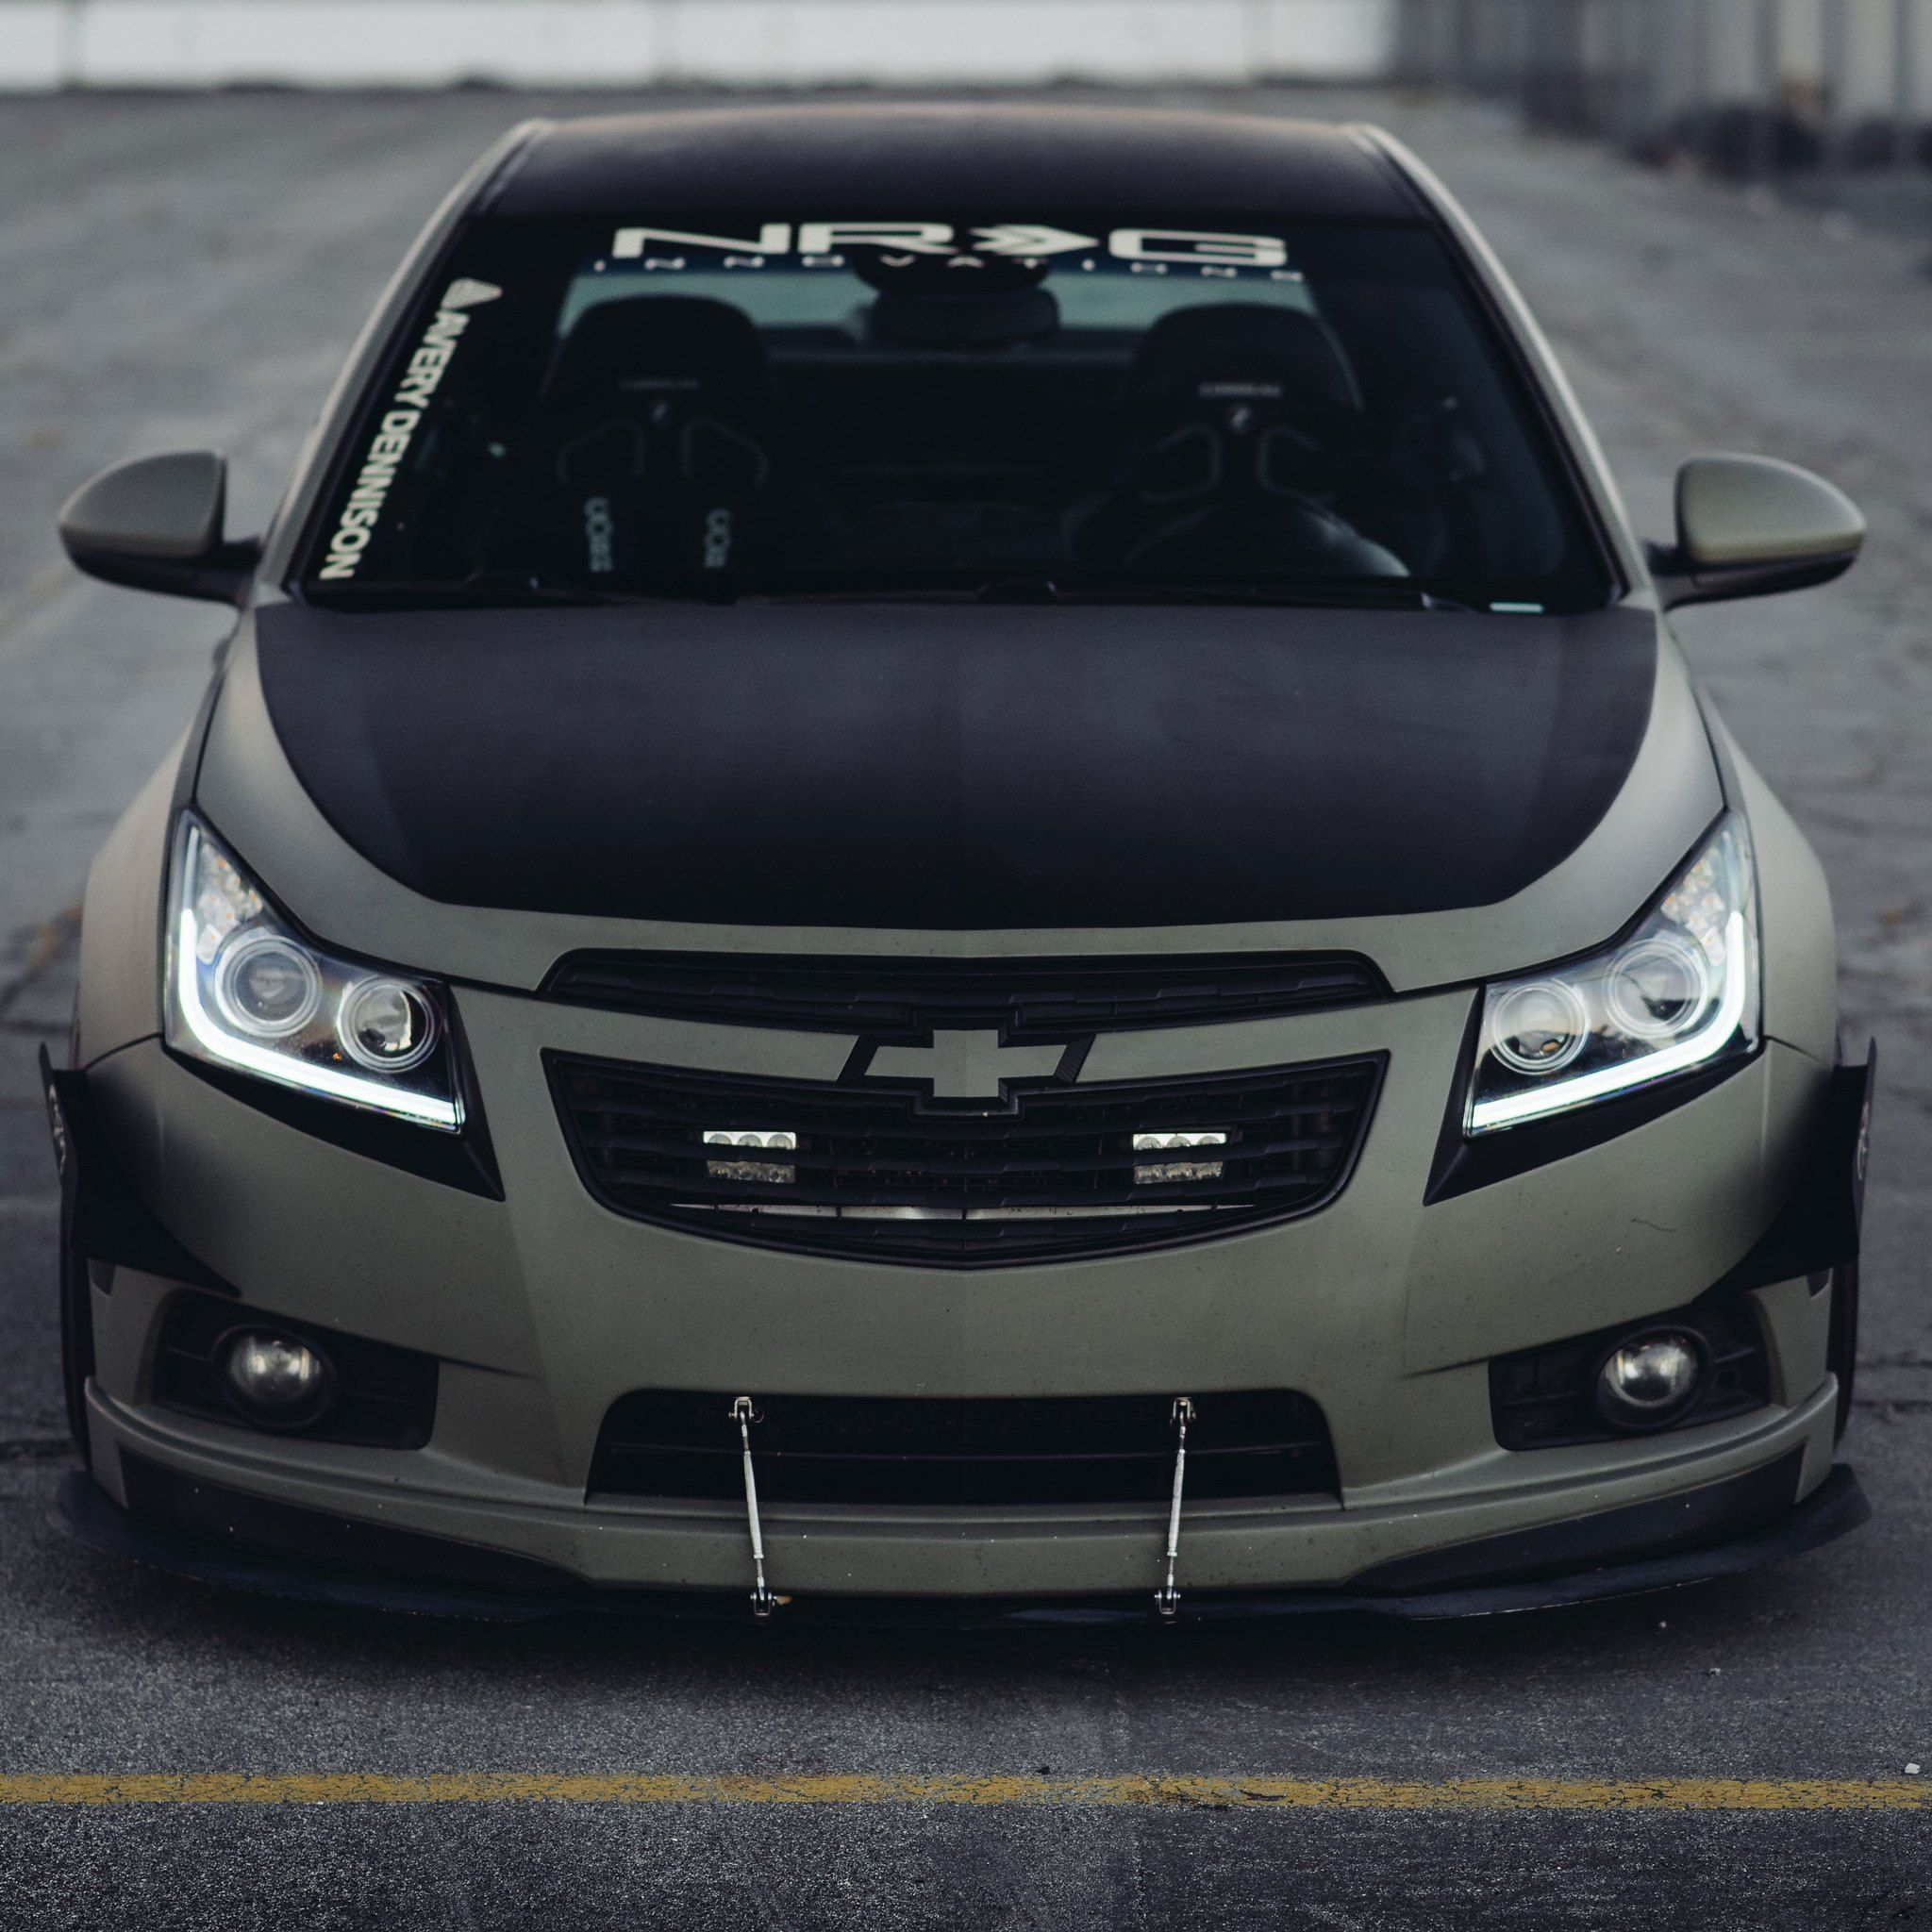 Stanced Matte Green Chevy Cruze On Deep Dish Klutch Wheels Chevy Cruze Chevrolet Cruze Cruze